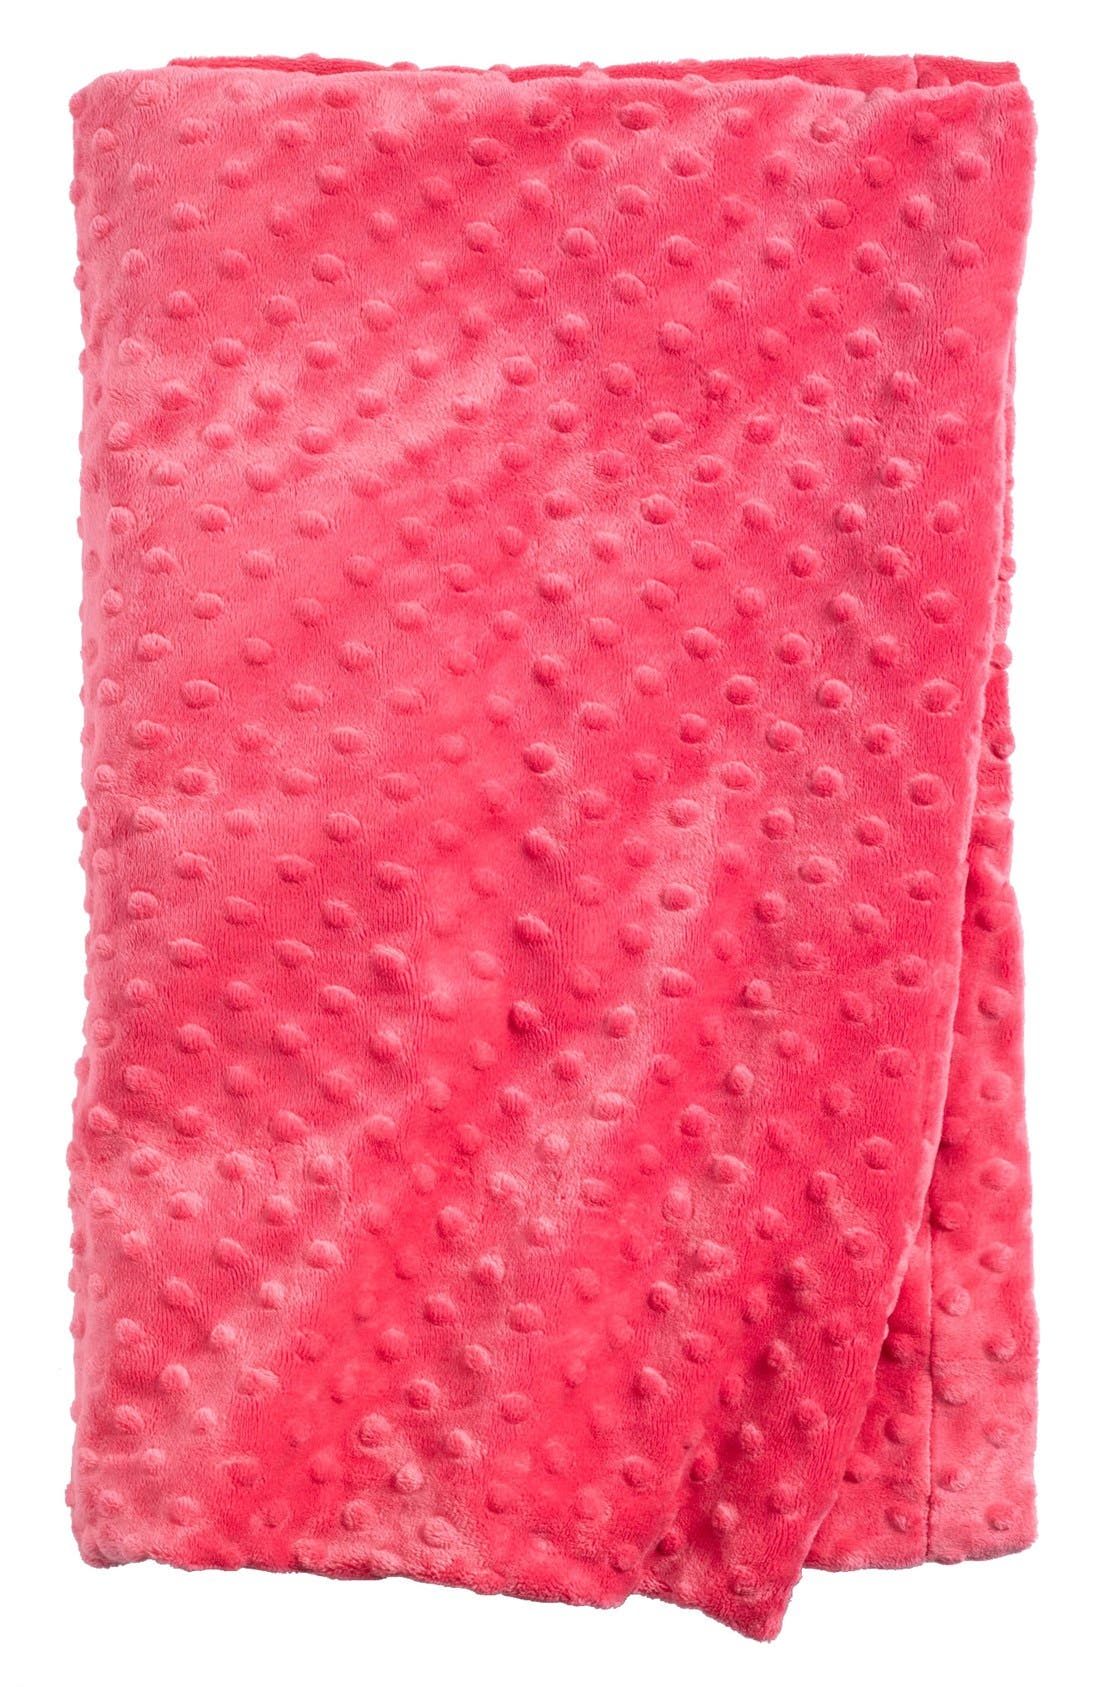 Main Image - Sonoma Lavender Hot Pink Dot Blankie (Nordstrom Exclusive) ($64 Value)